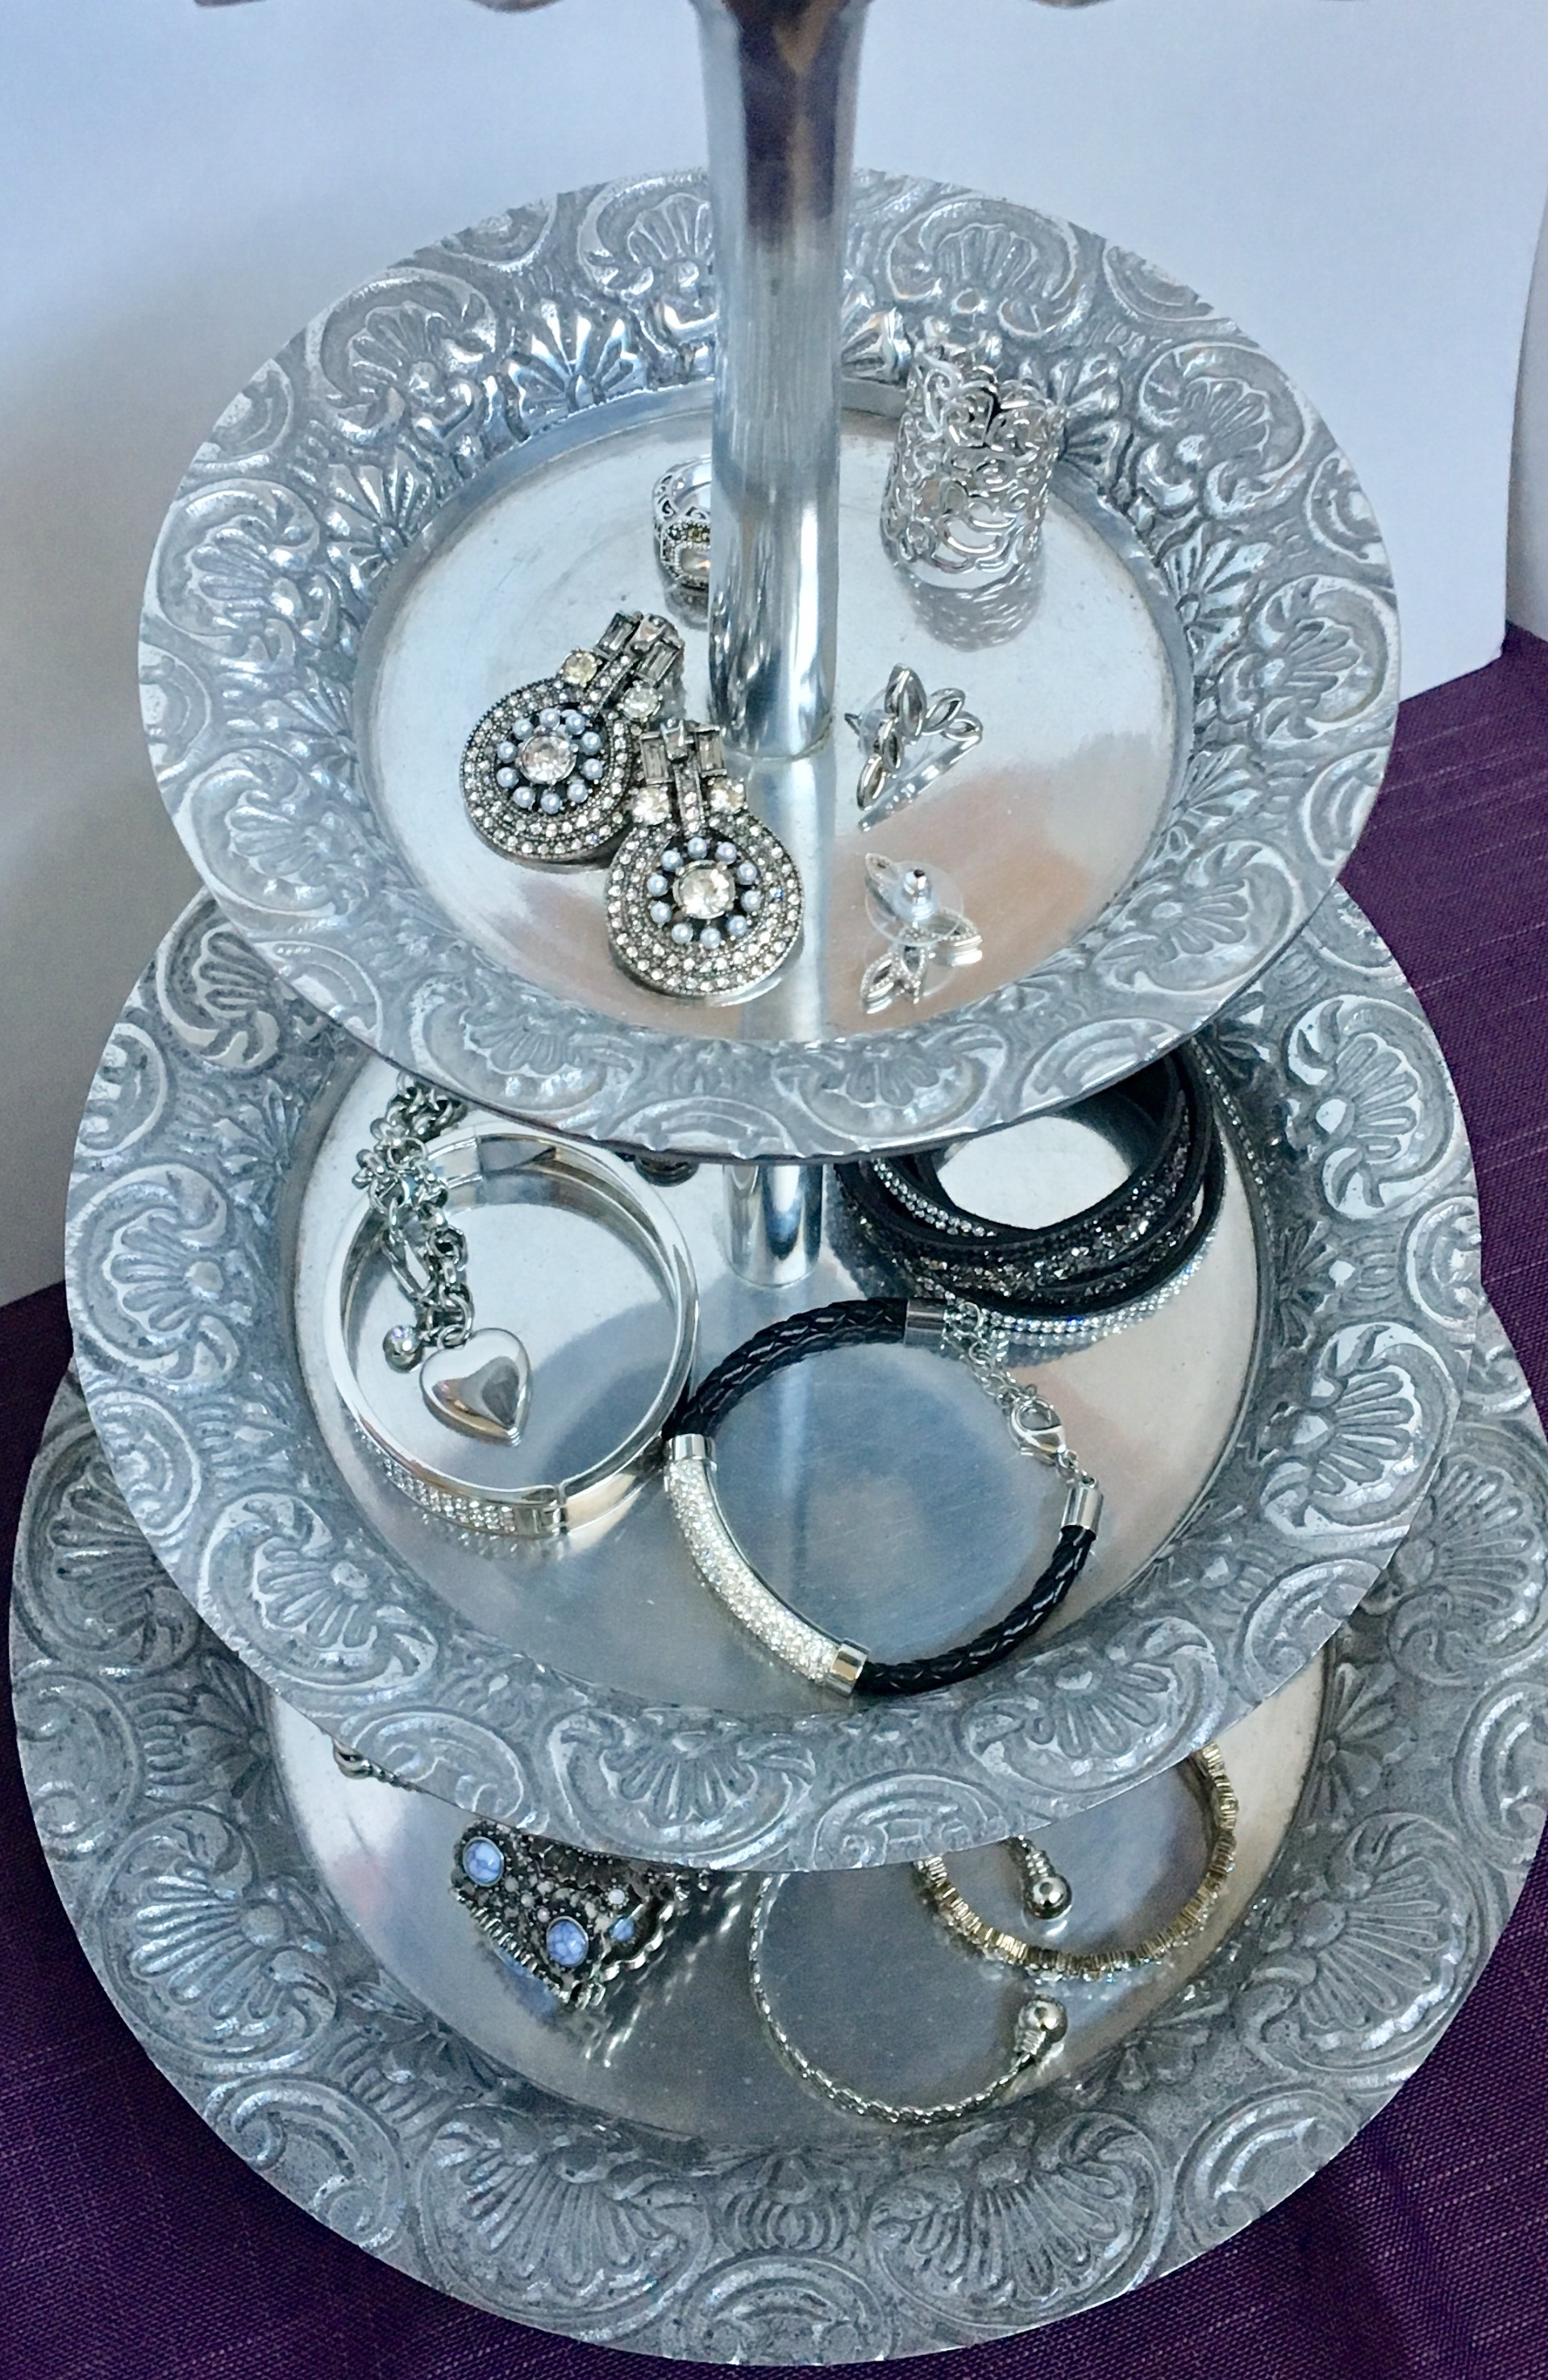 Tiered tray bracelet and earring organizing